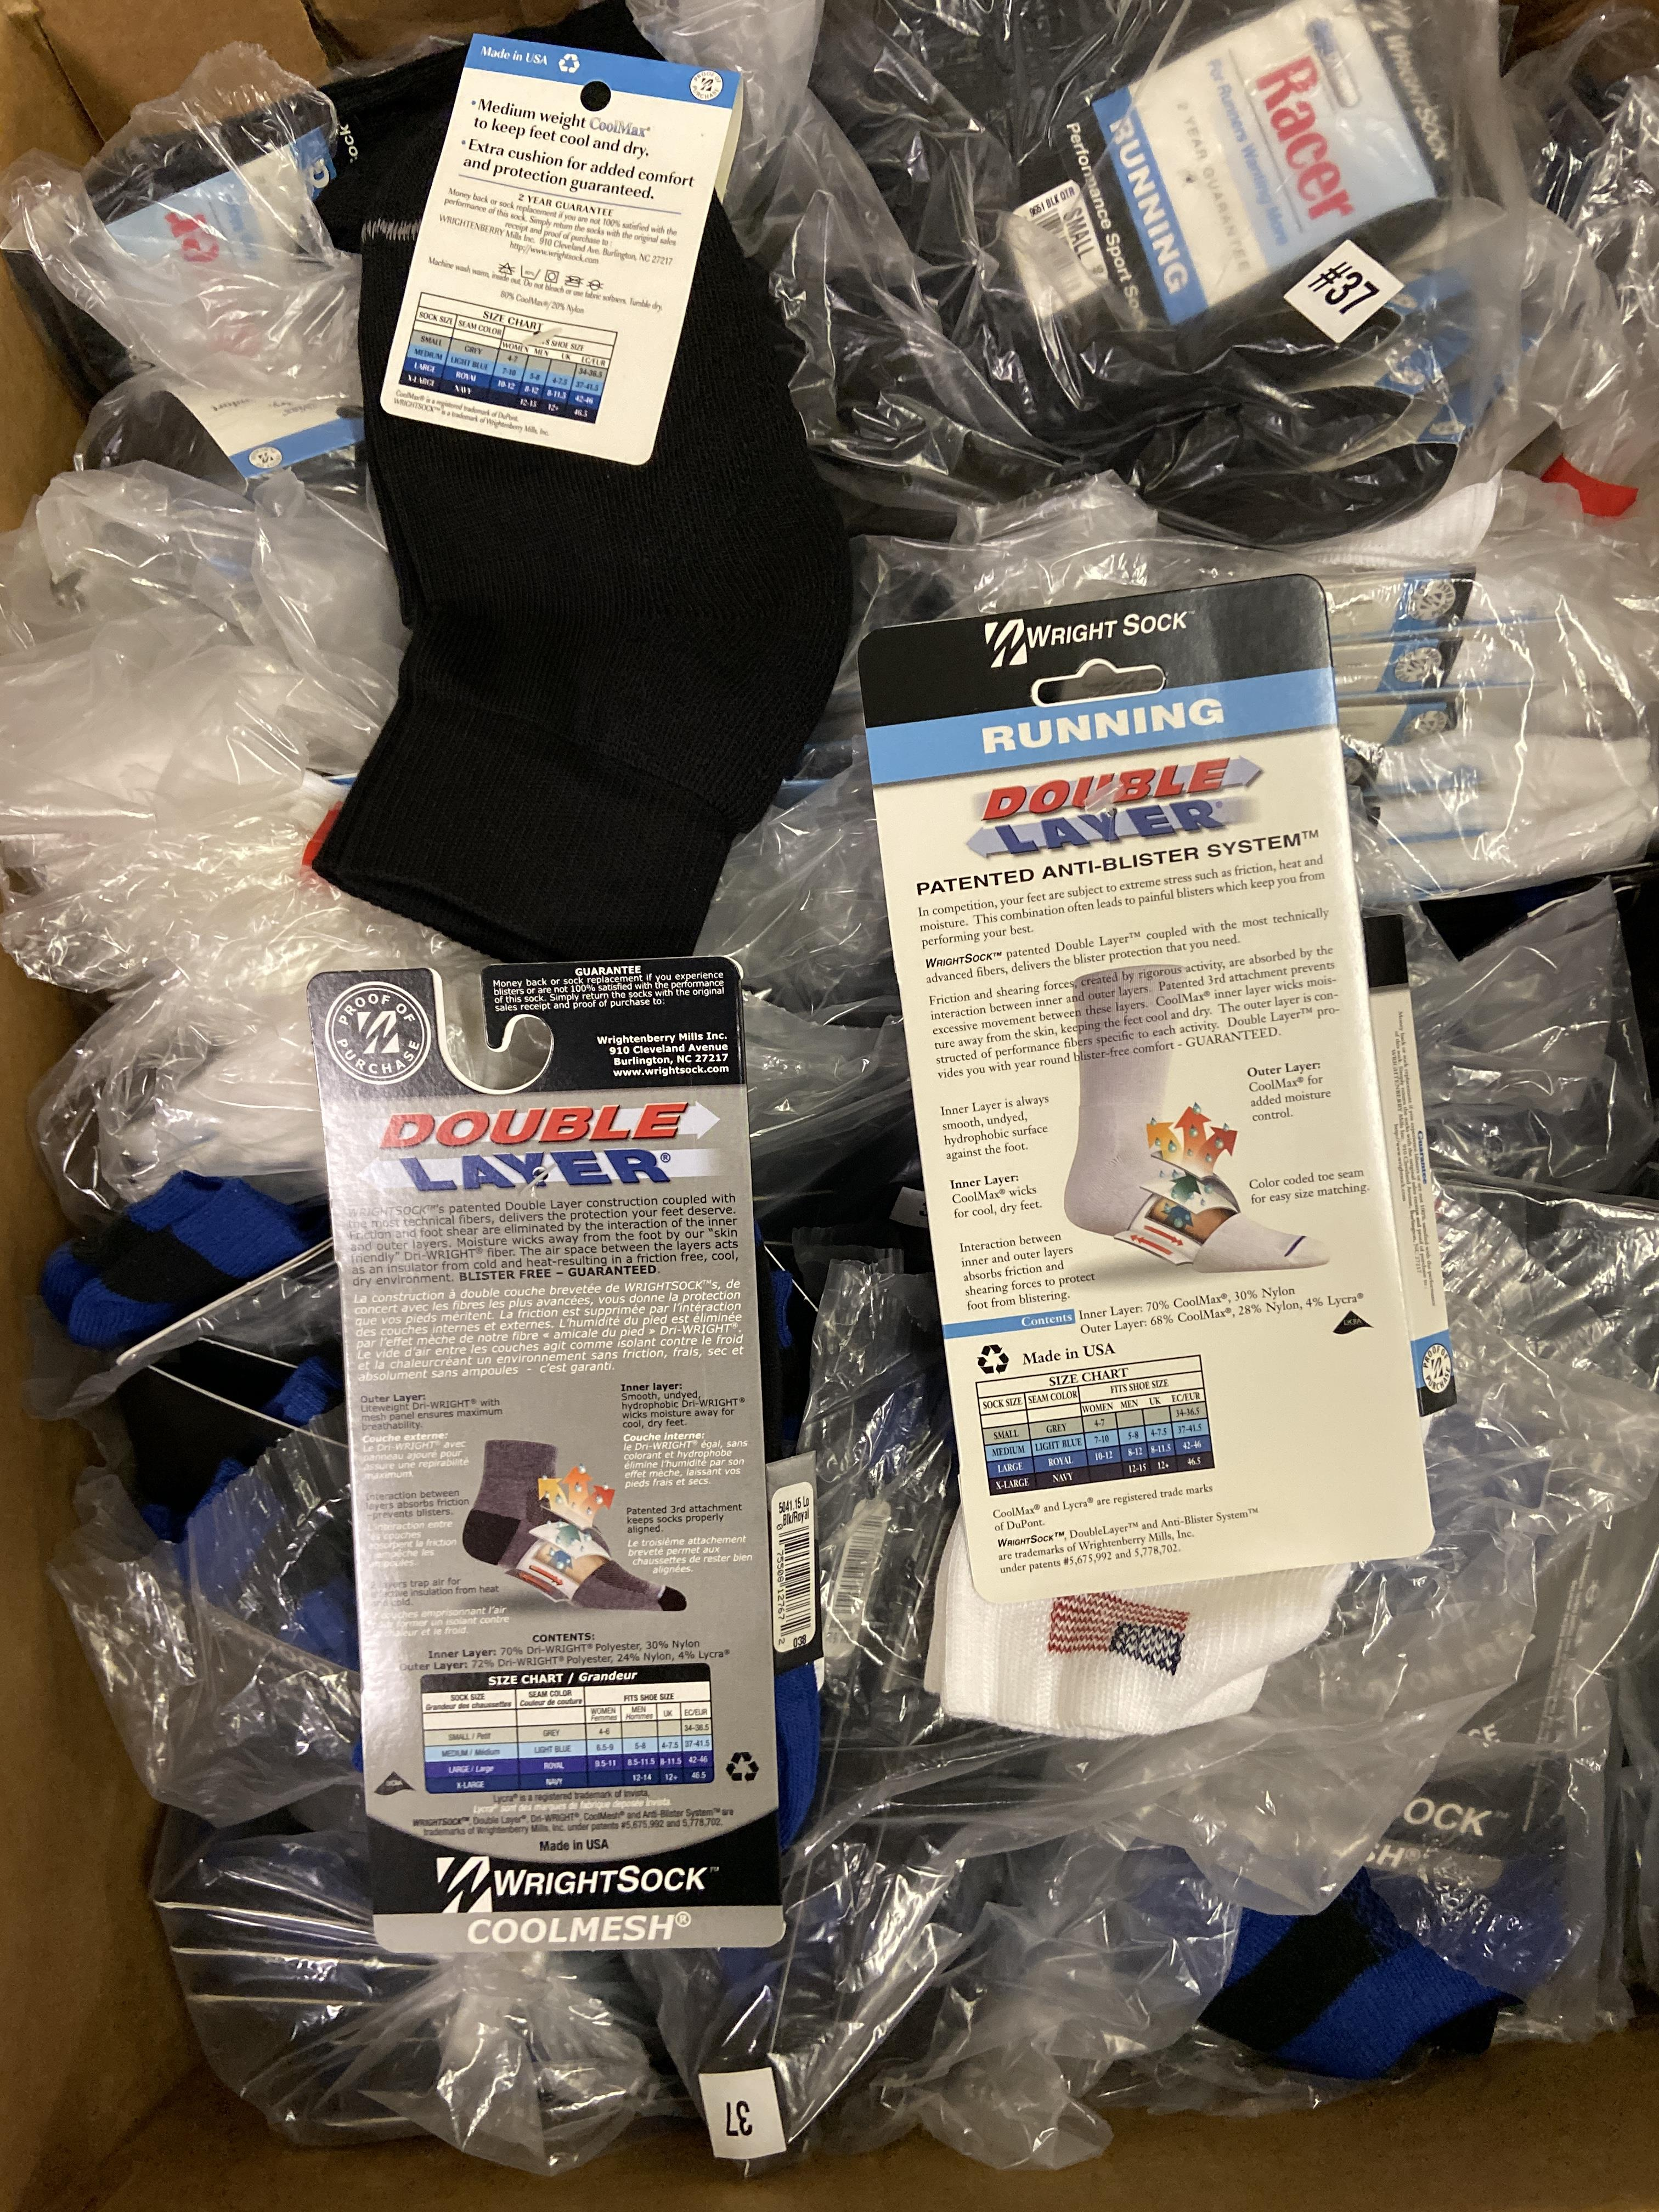 250+ packs of New Socks, Wrightsock Running and Coolmesh, Double Layer, Various Colors - Image 3 of 3